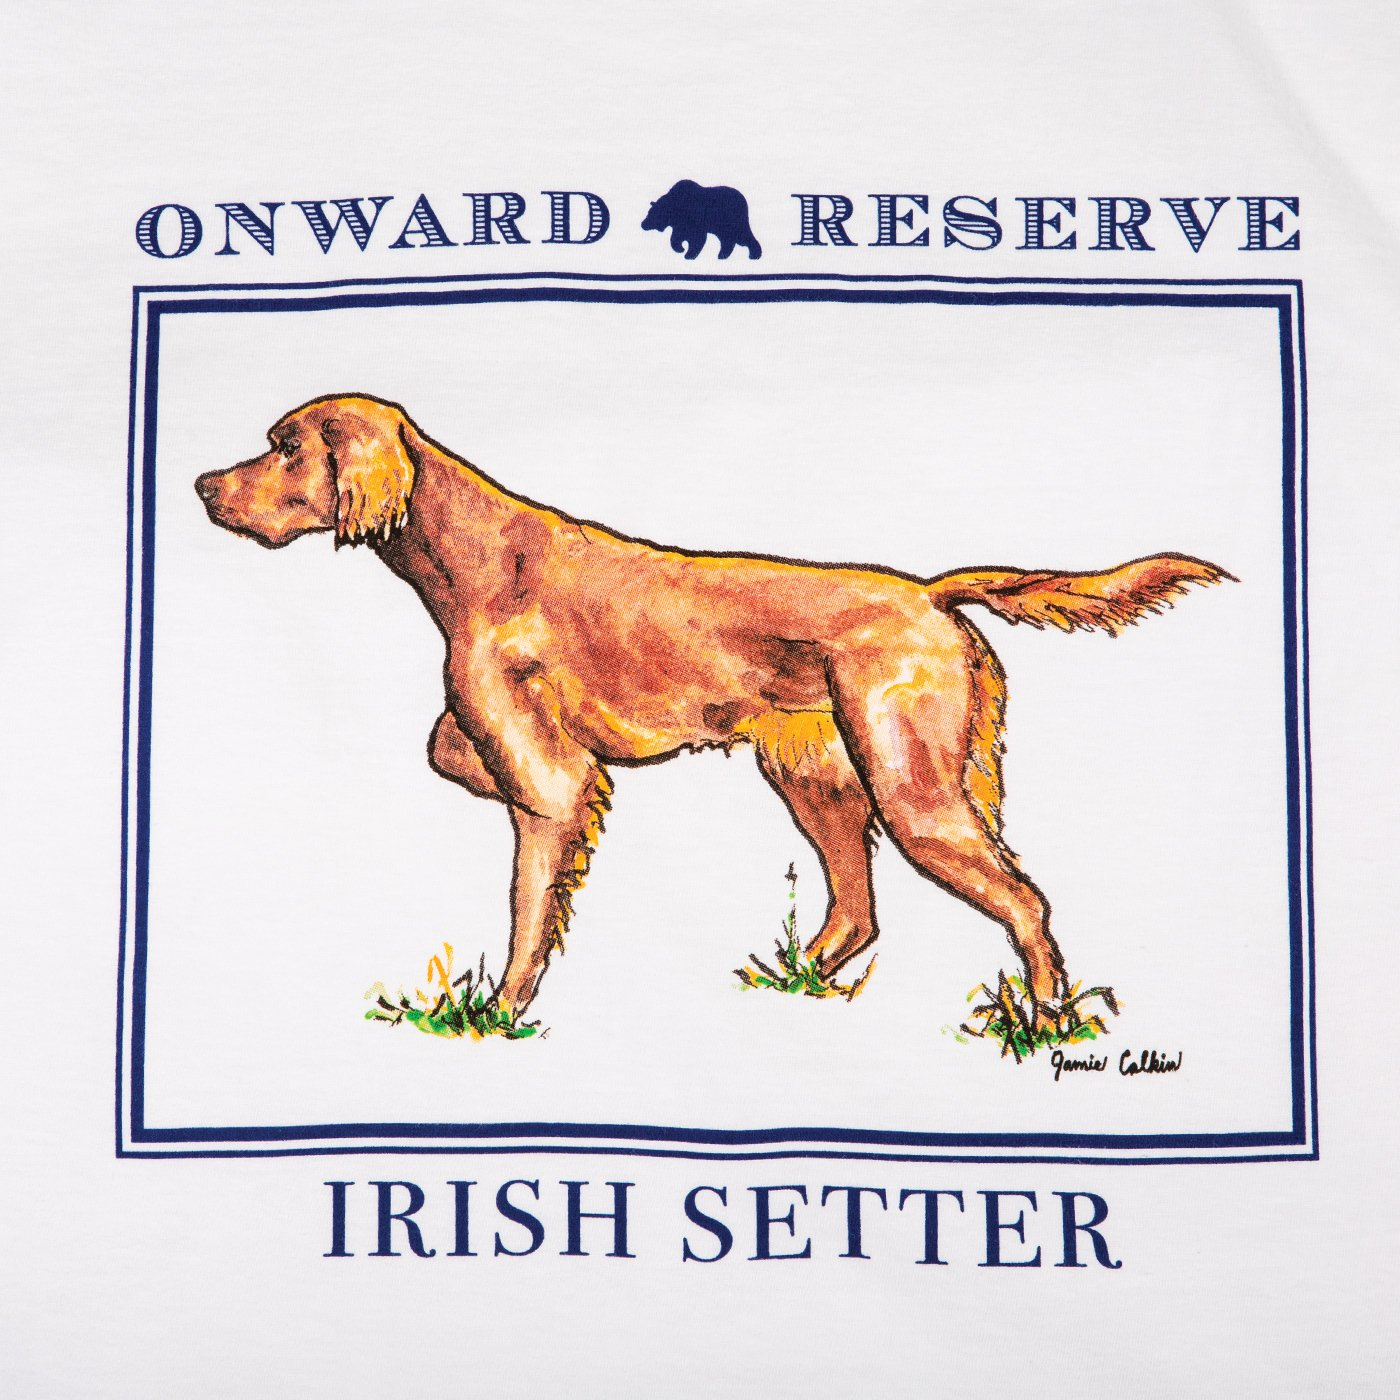 OR-Jamie-Tee-Irish-Setter-White-Detail.jpg